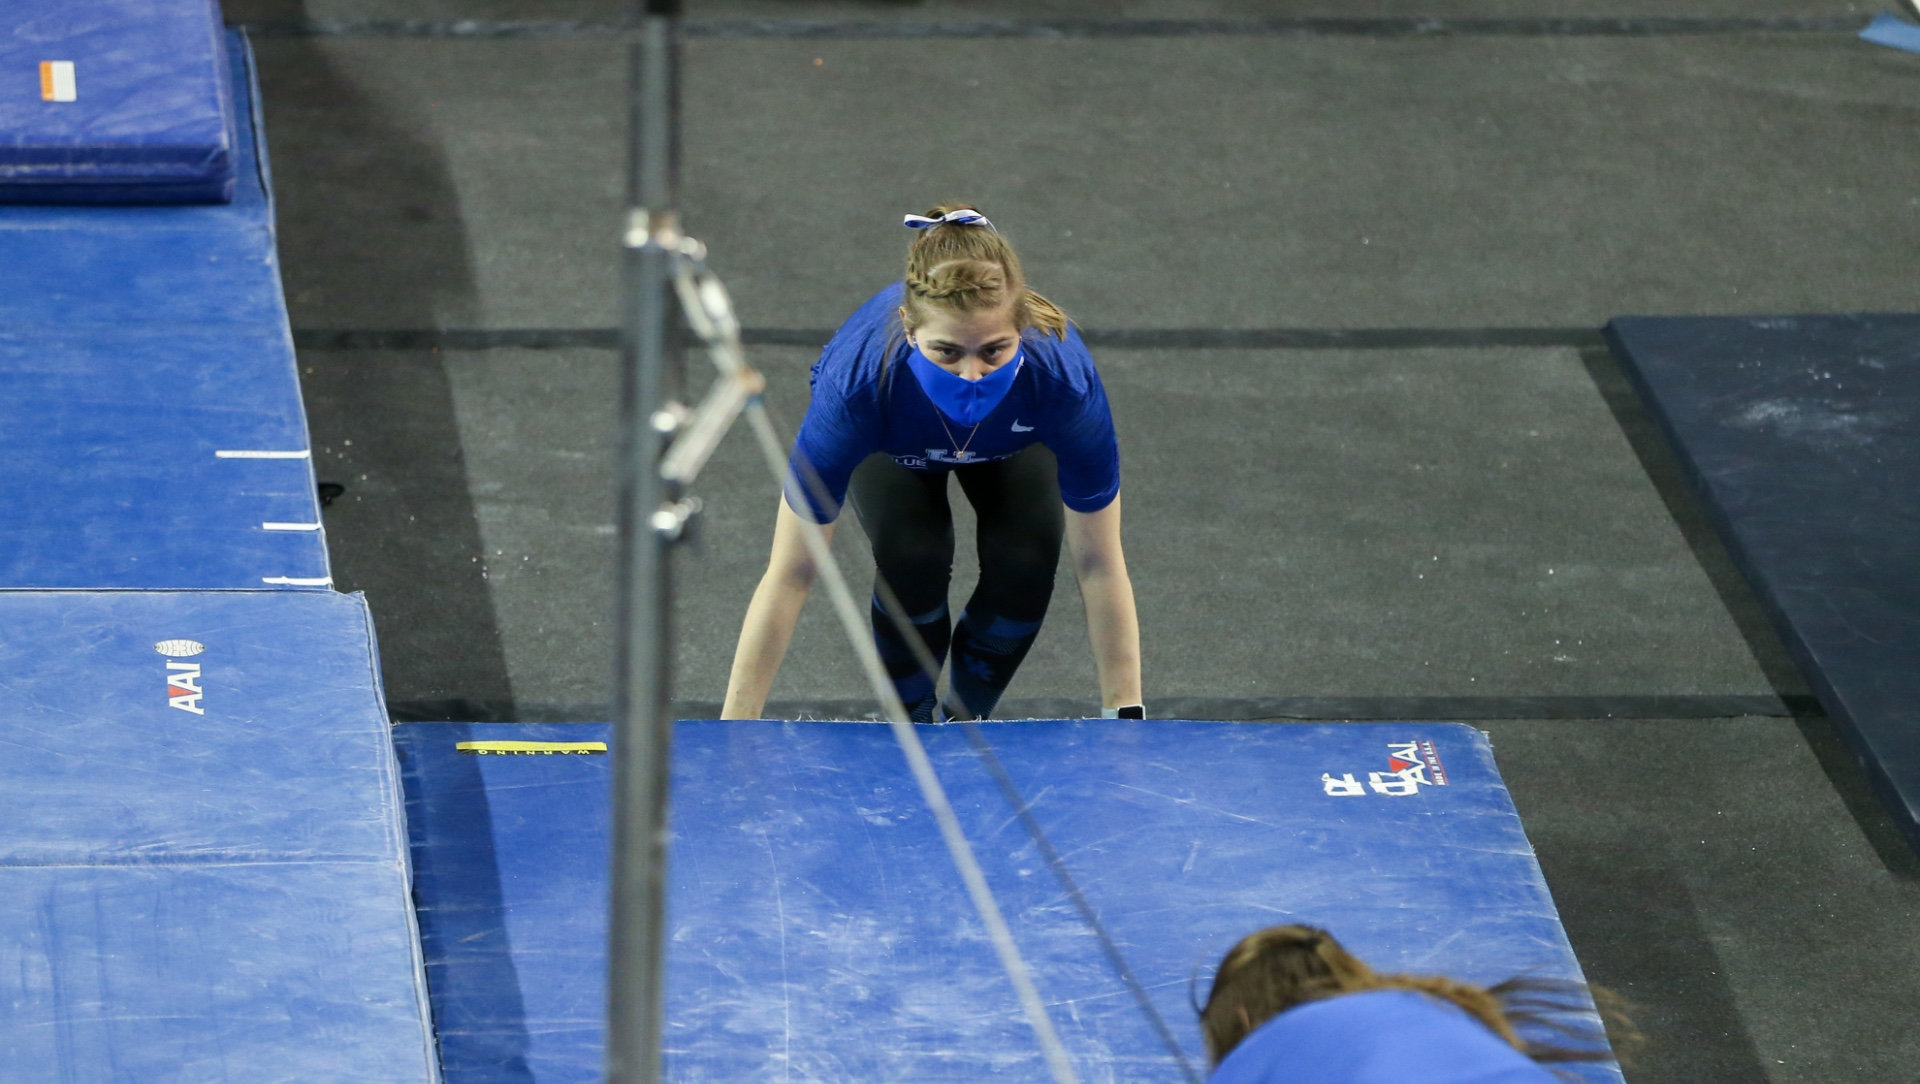 Allison squats to position a mat in place at a gymnastics practice. She is wearing a blue facemask, blue tee shirt, and black leggings. Her hair is pulled back and has a French braid across the front.